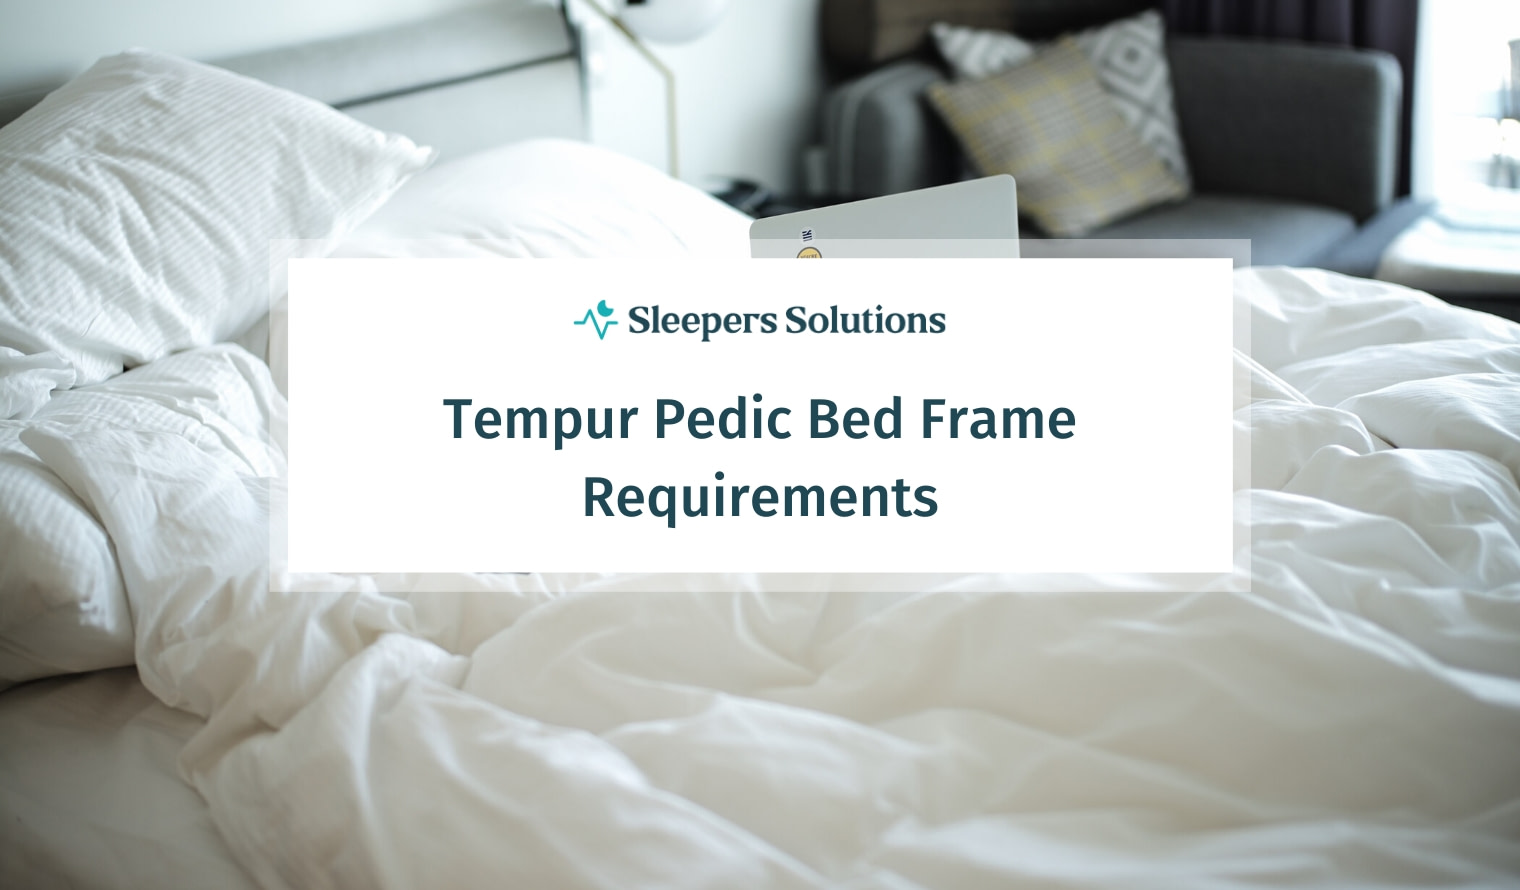 Tempur Pedic Bed Frame Requirements